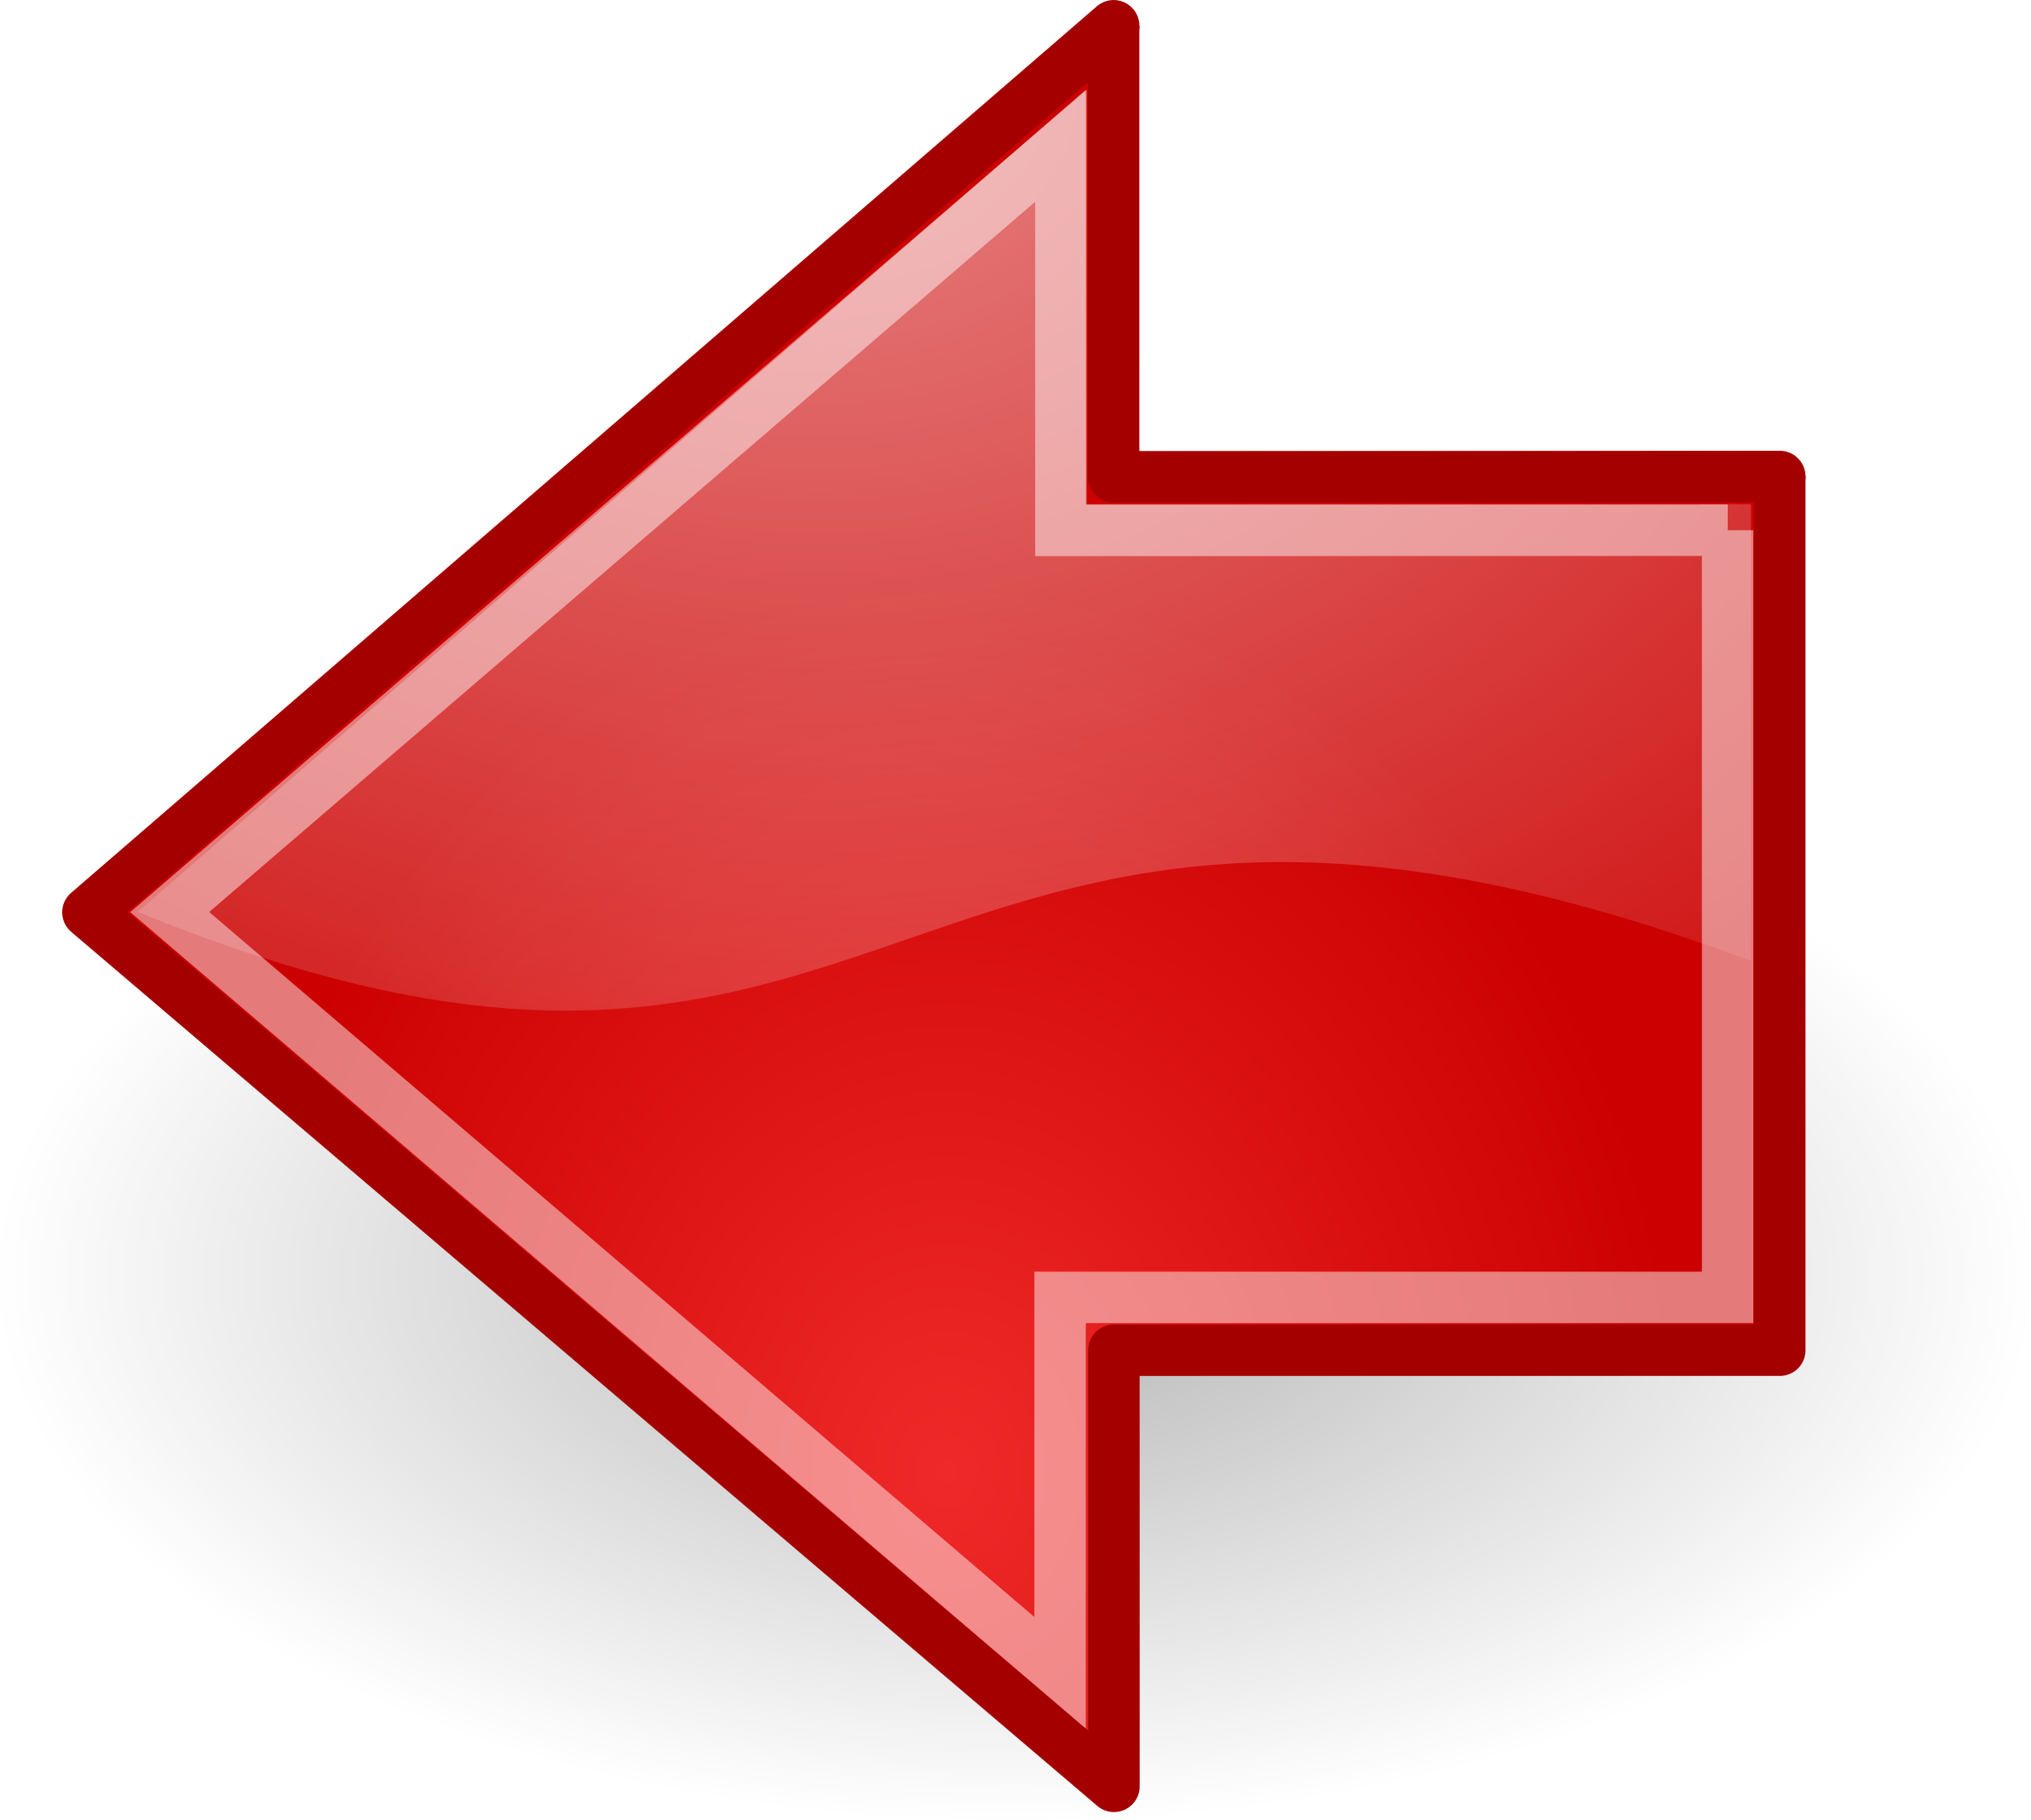 Red arrow clipart clipart suggest for Arrow clipart